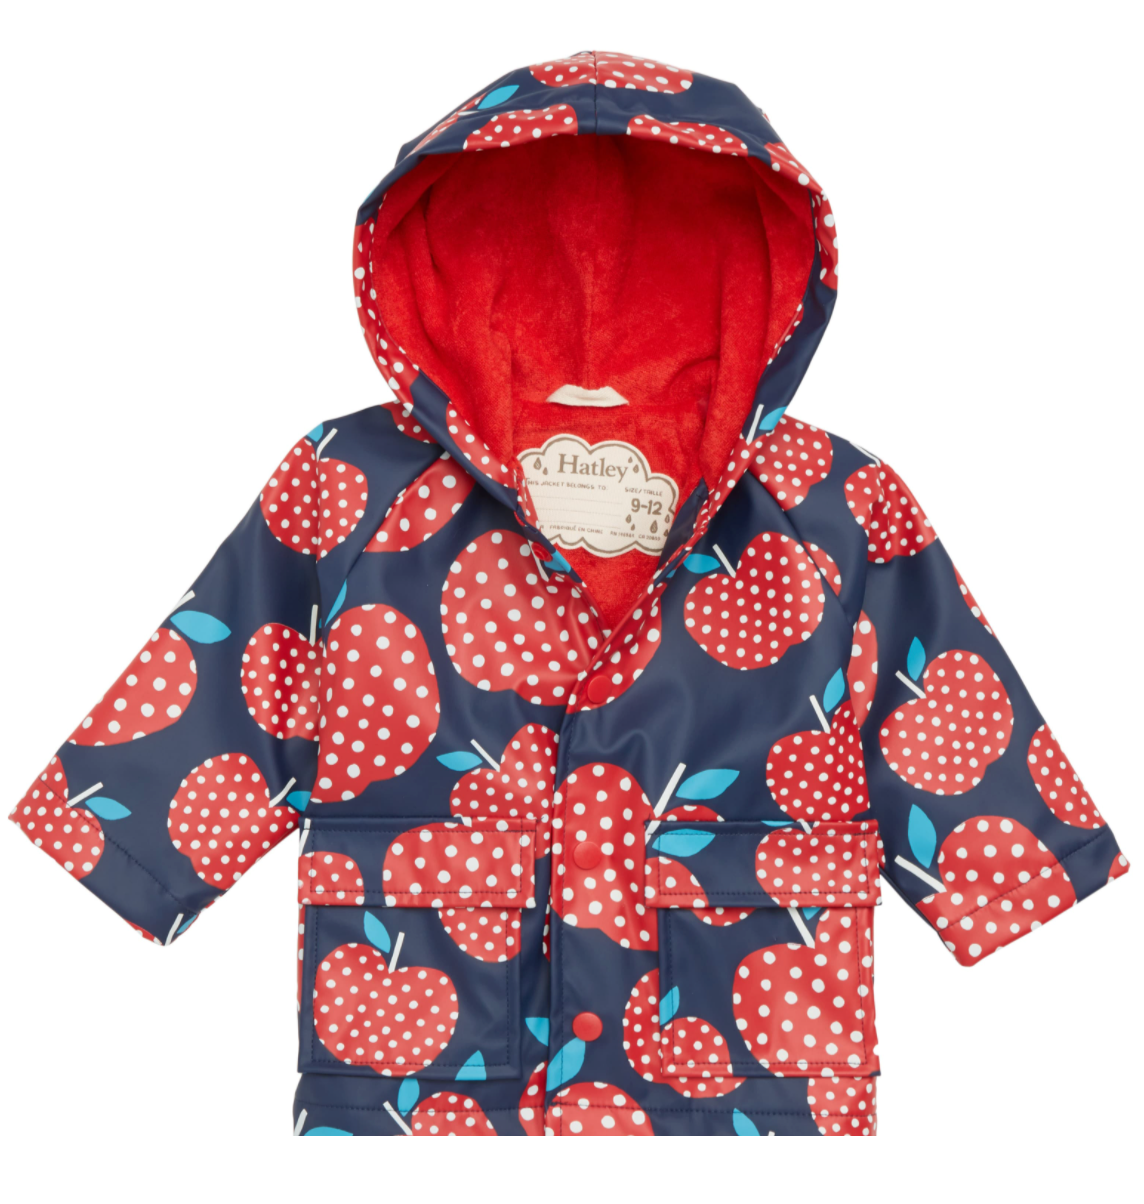 Hatley Baby Raincoat - Polka Dot Apples